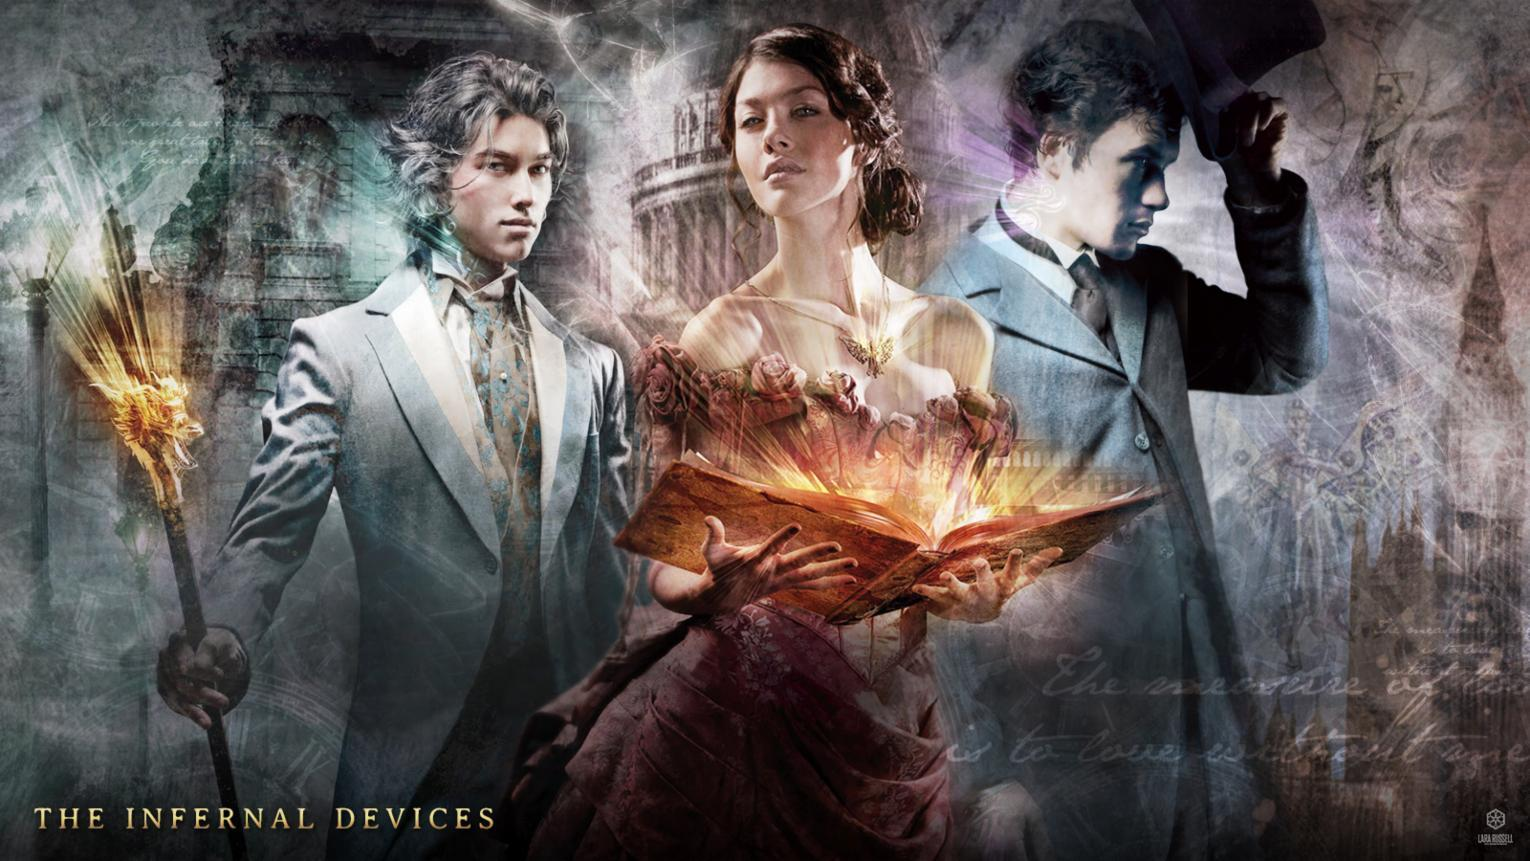 Who is your favourite charectar from the infernal devices?